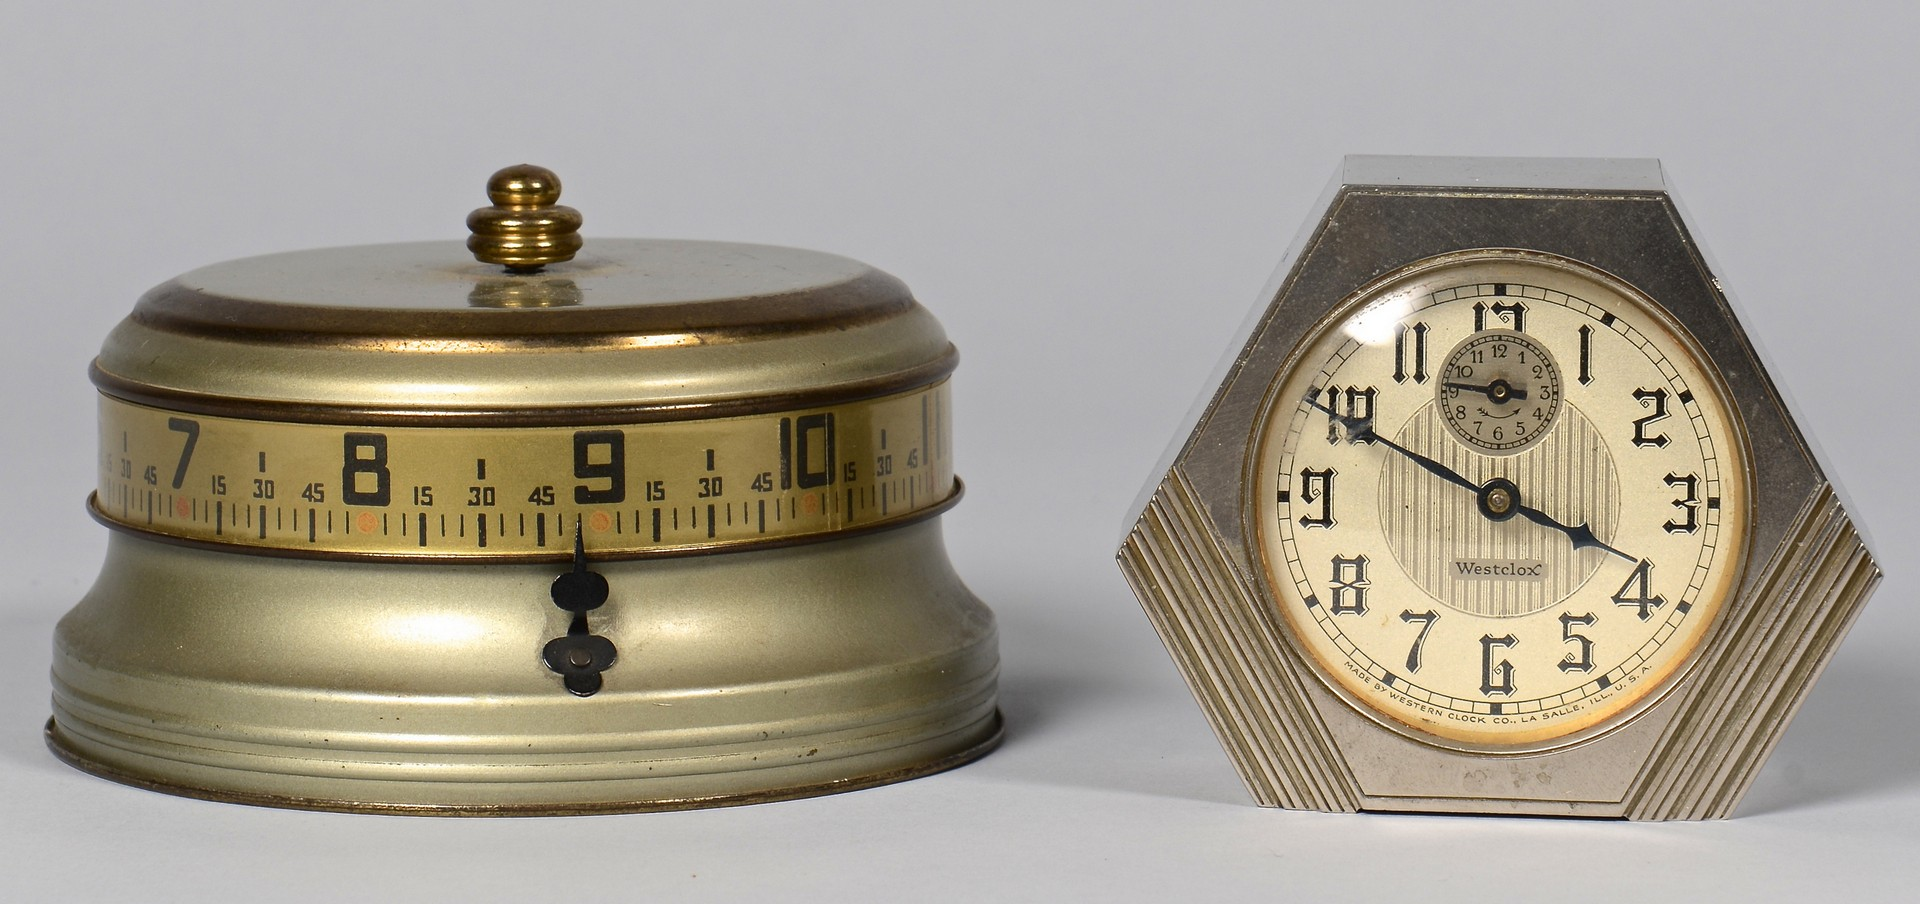 Lot 899: Vintage Clocks and Measuring Devices